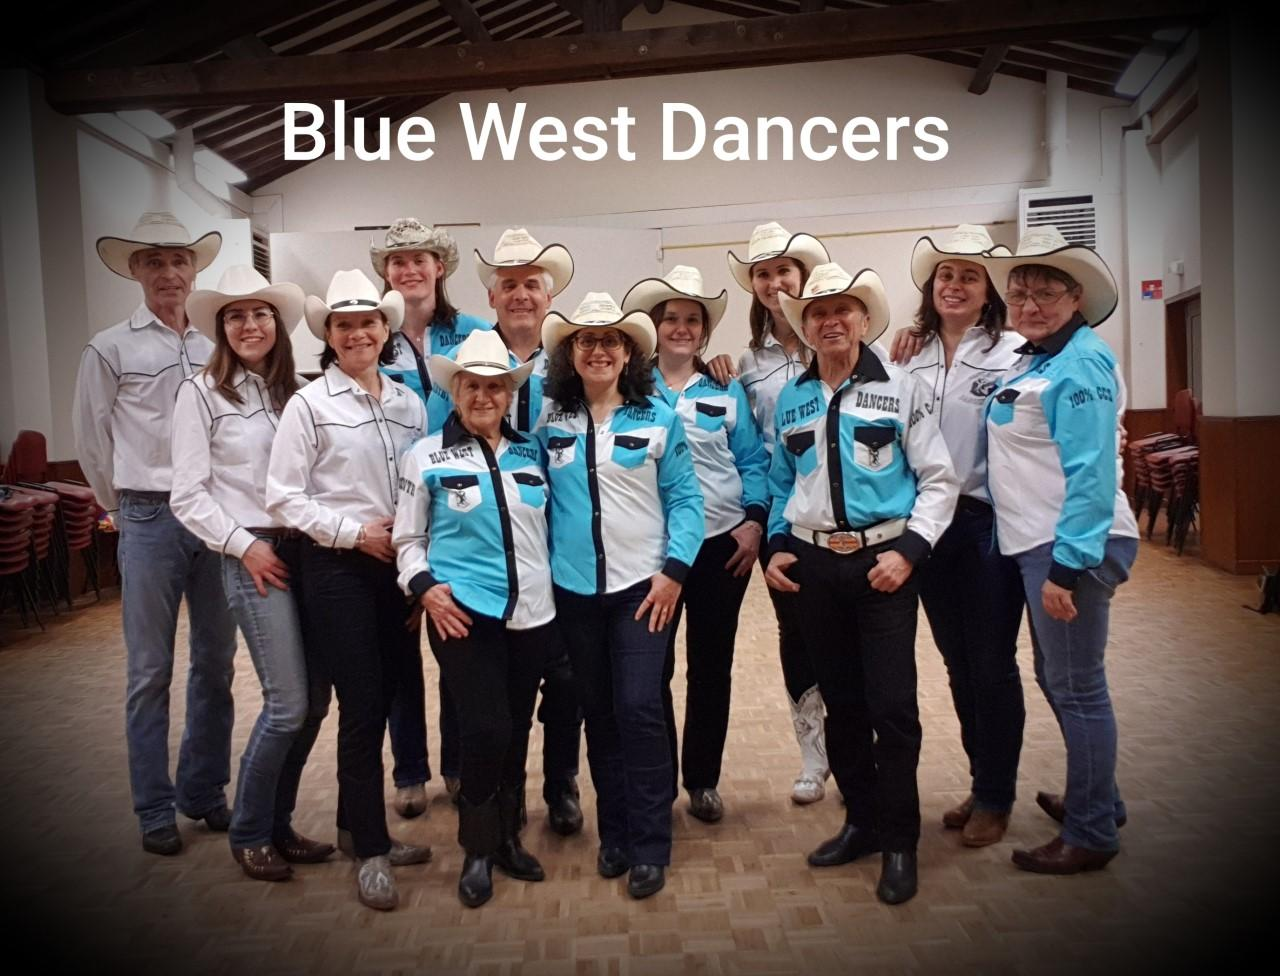 Blue west dancers team